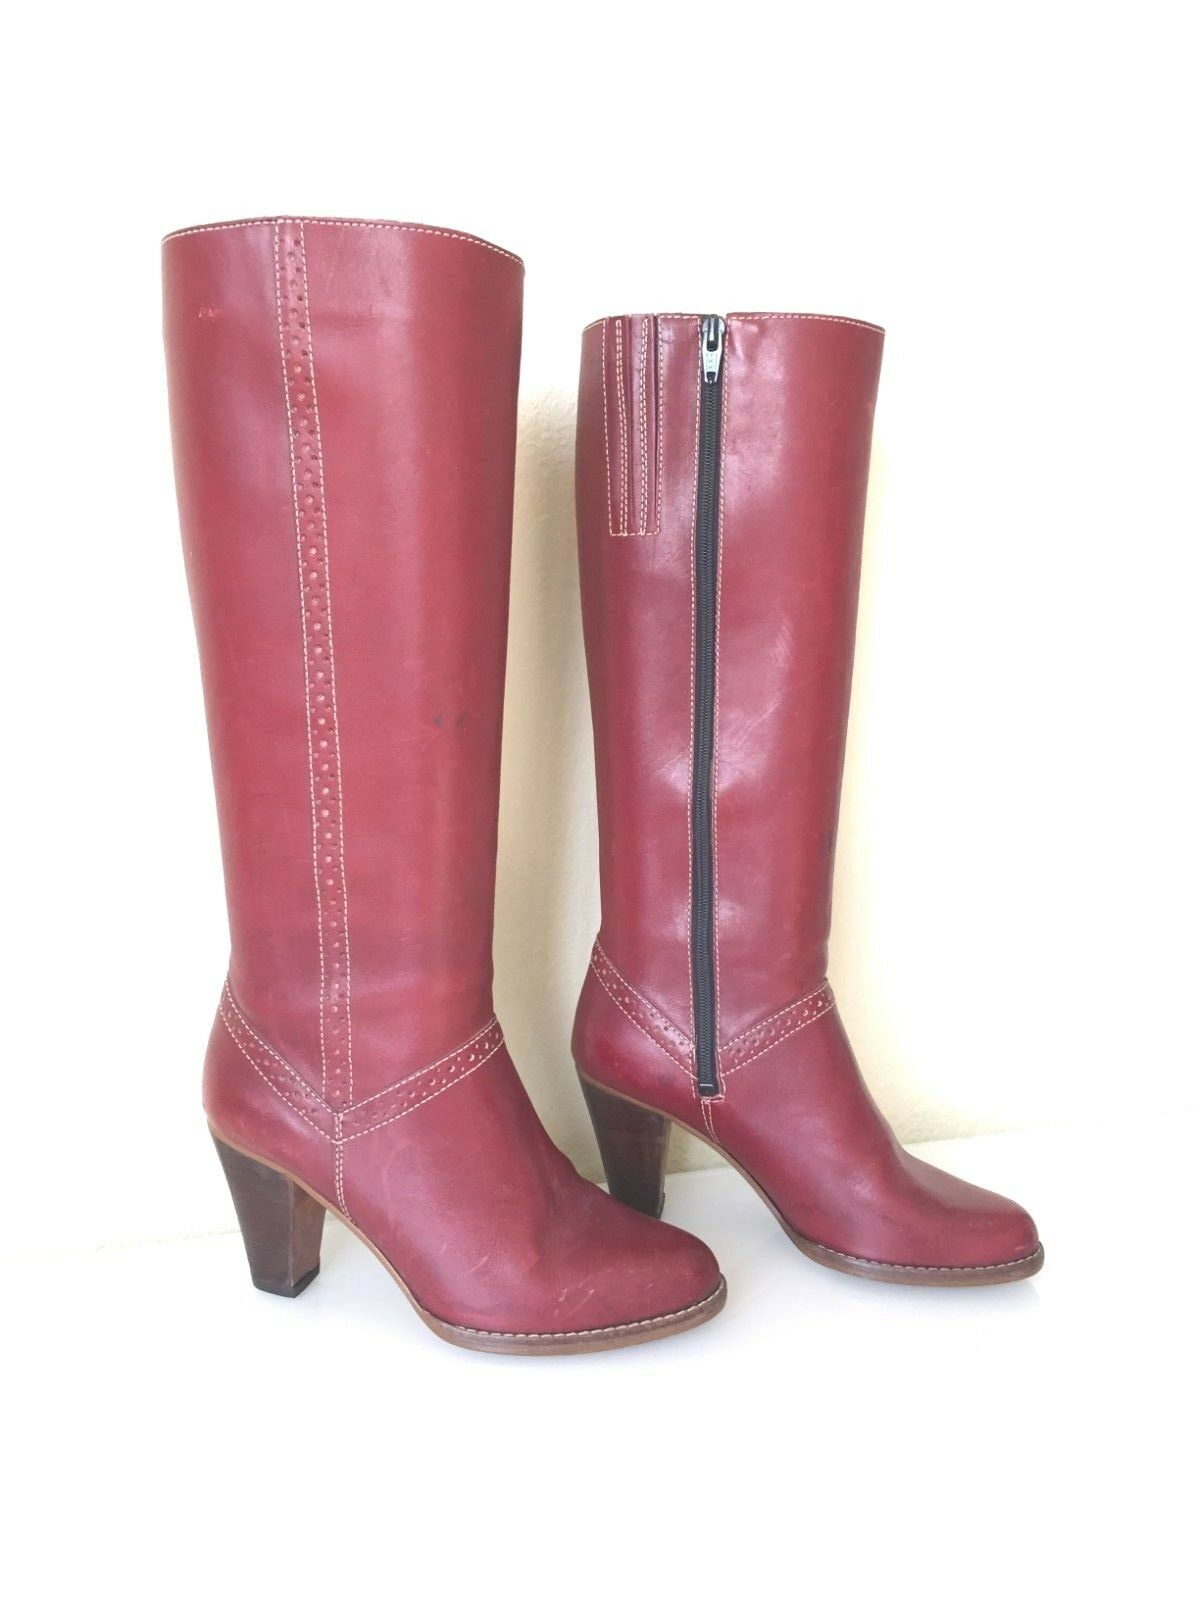 70s Tall Burgundy Leather Boots Boho Riding Thom McAn Made in Brazil  7